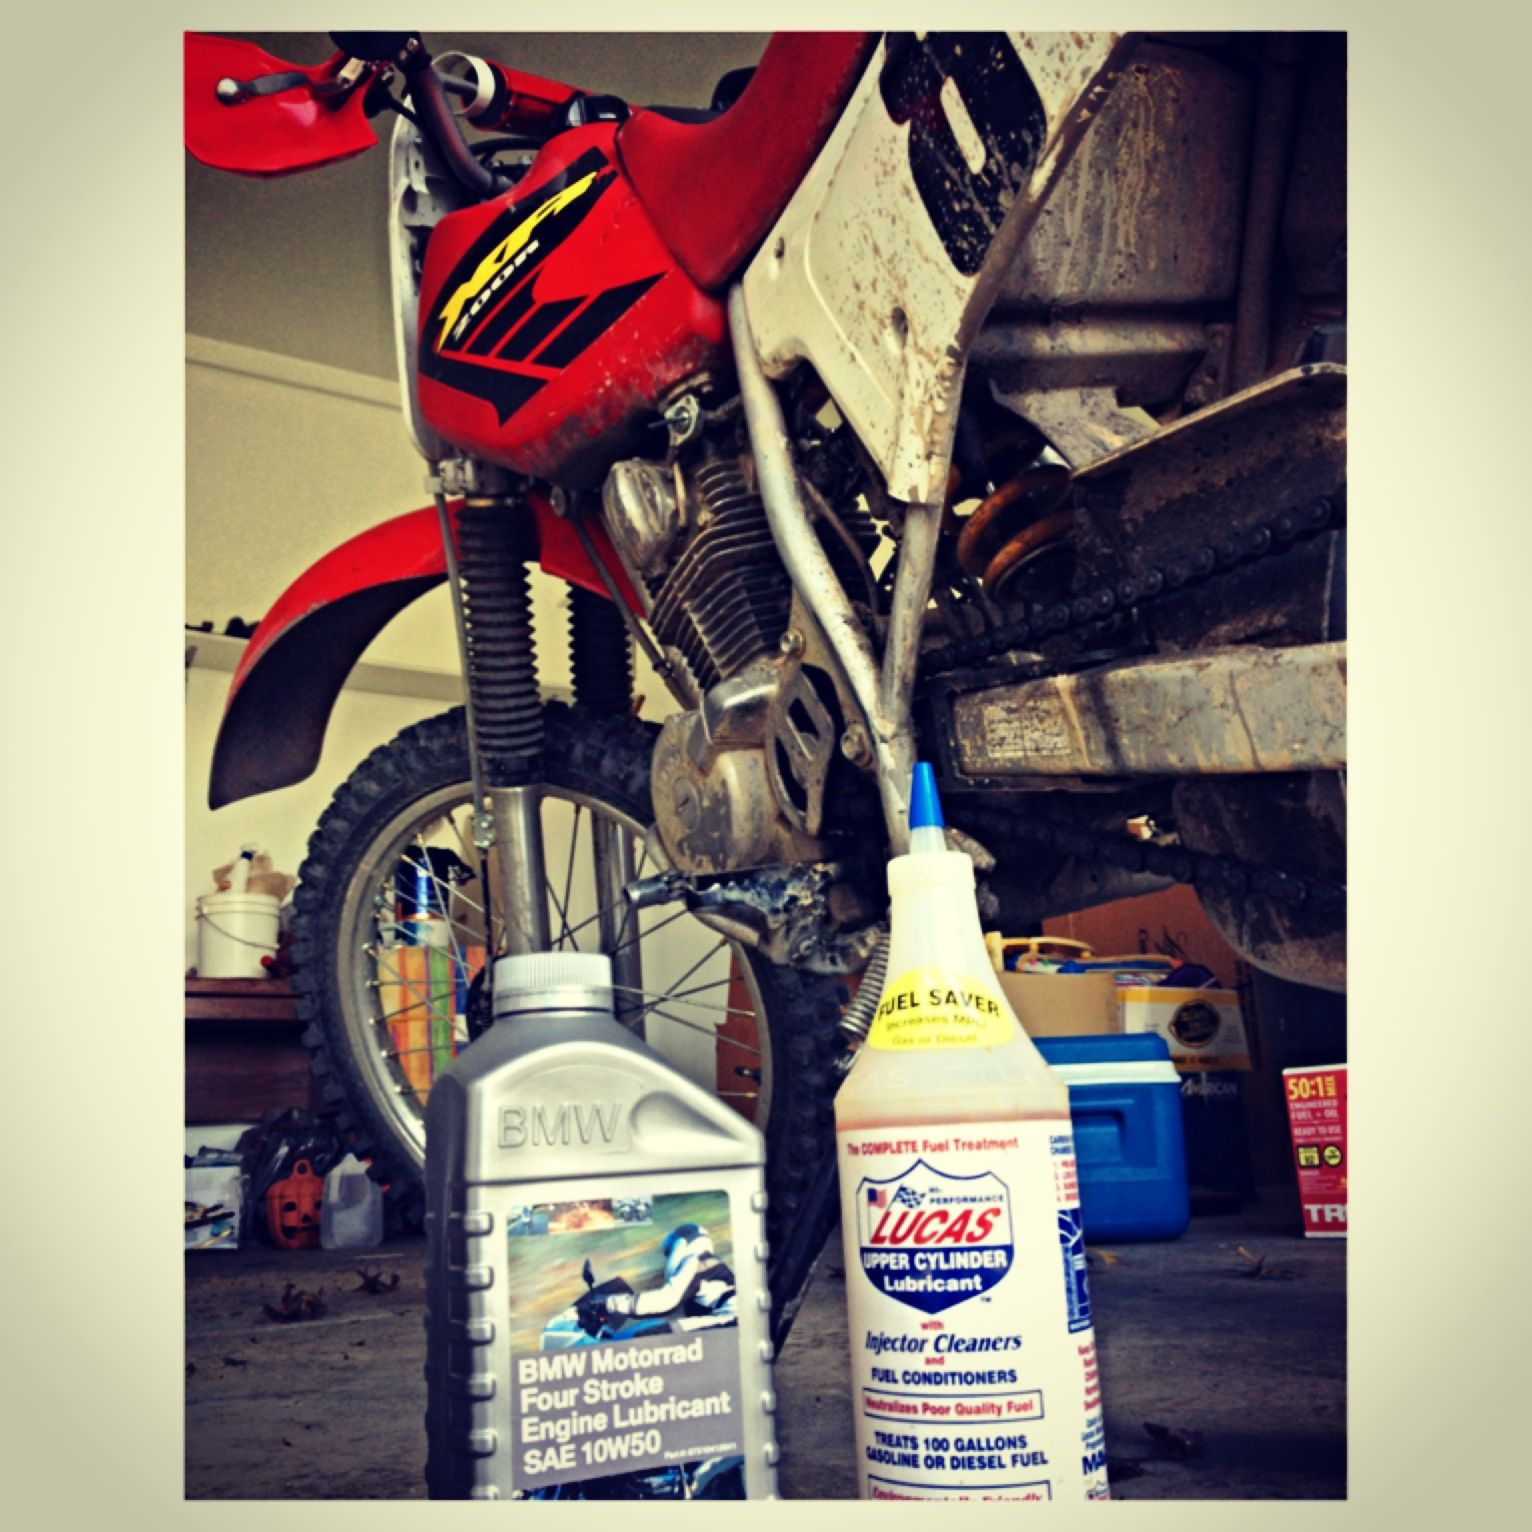 The Good Girls Use Good Stuff For Their Bikes Because They Ride